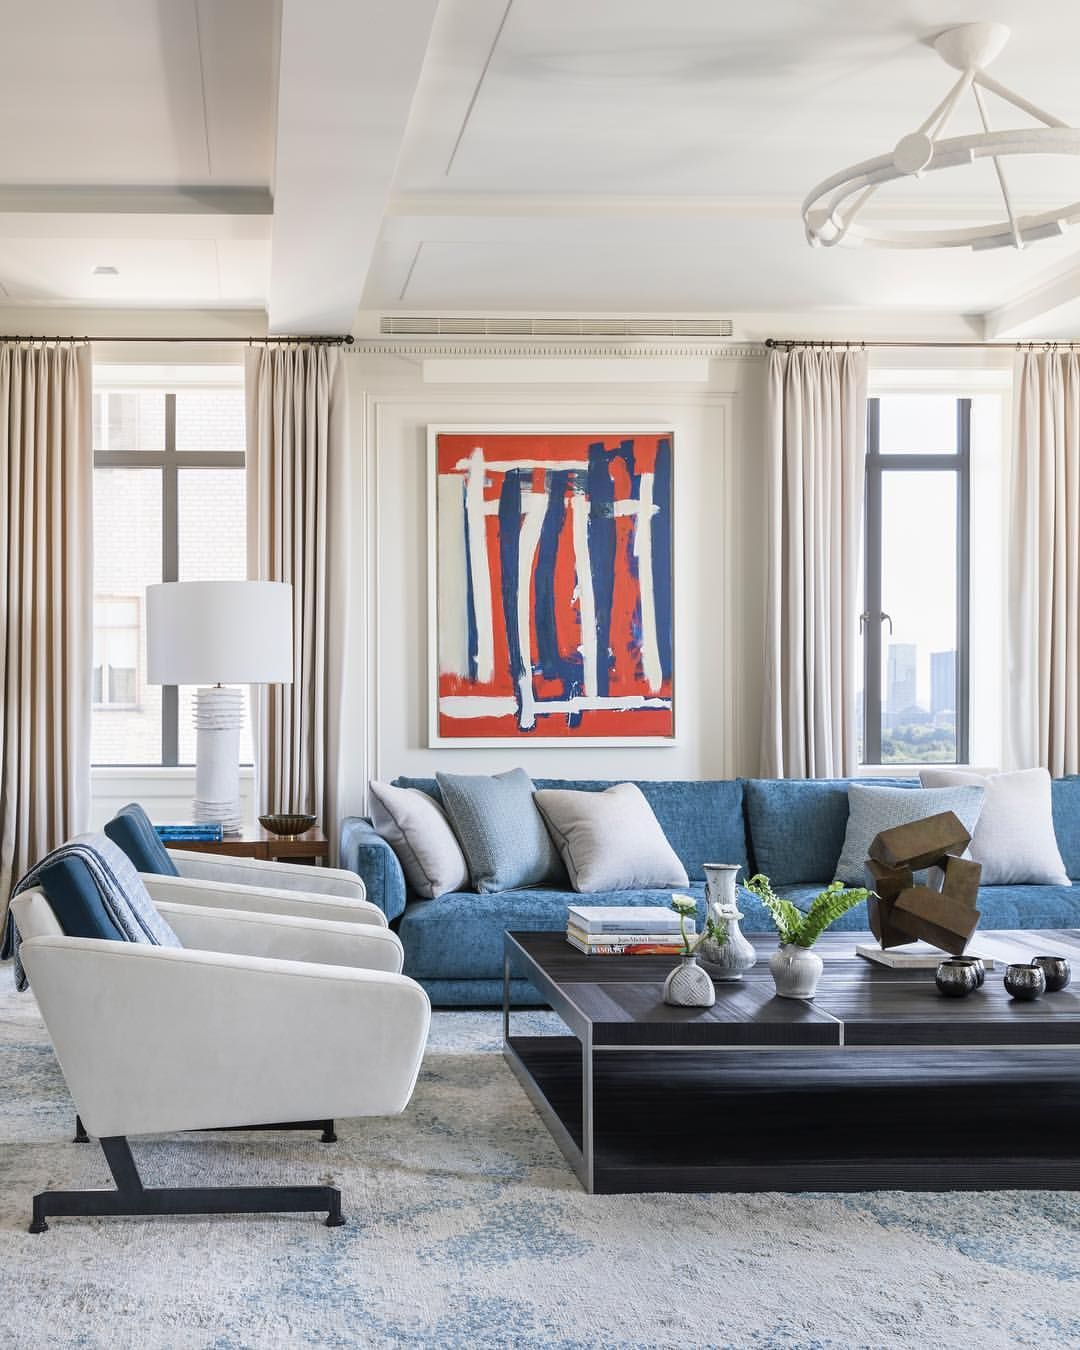 Victoria Hagan On Instagram Family Room With A Pop Of Color Architecture By Fergusonshamami Victoria Hagan Victoria Hagan Interiors Transitional Interior